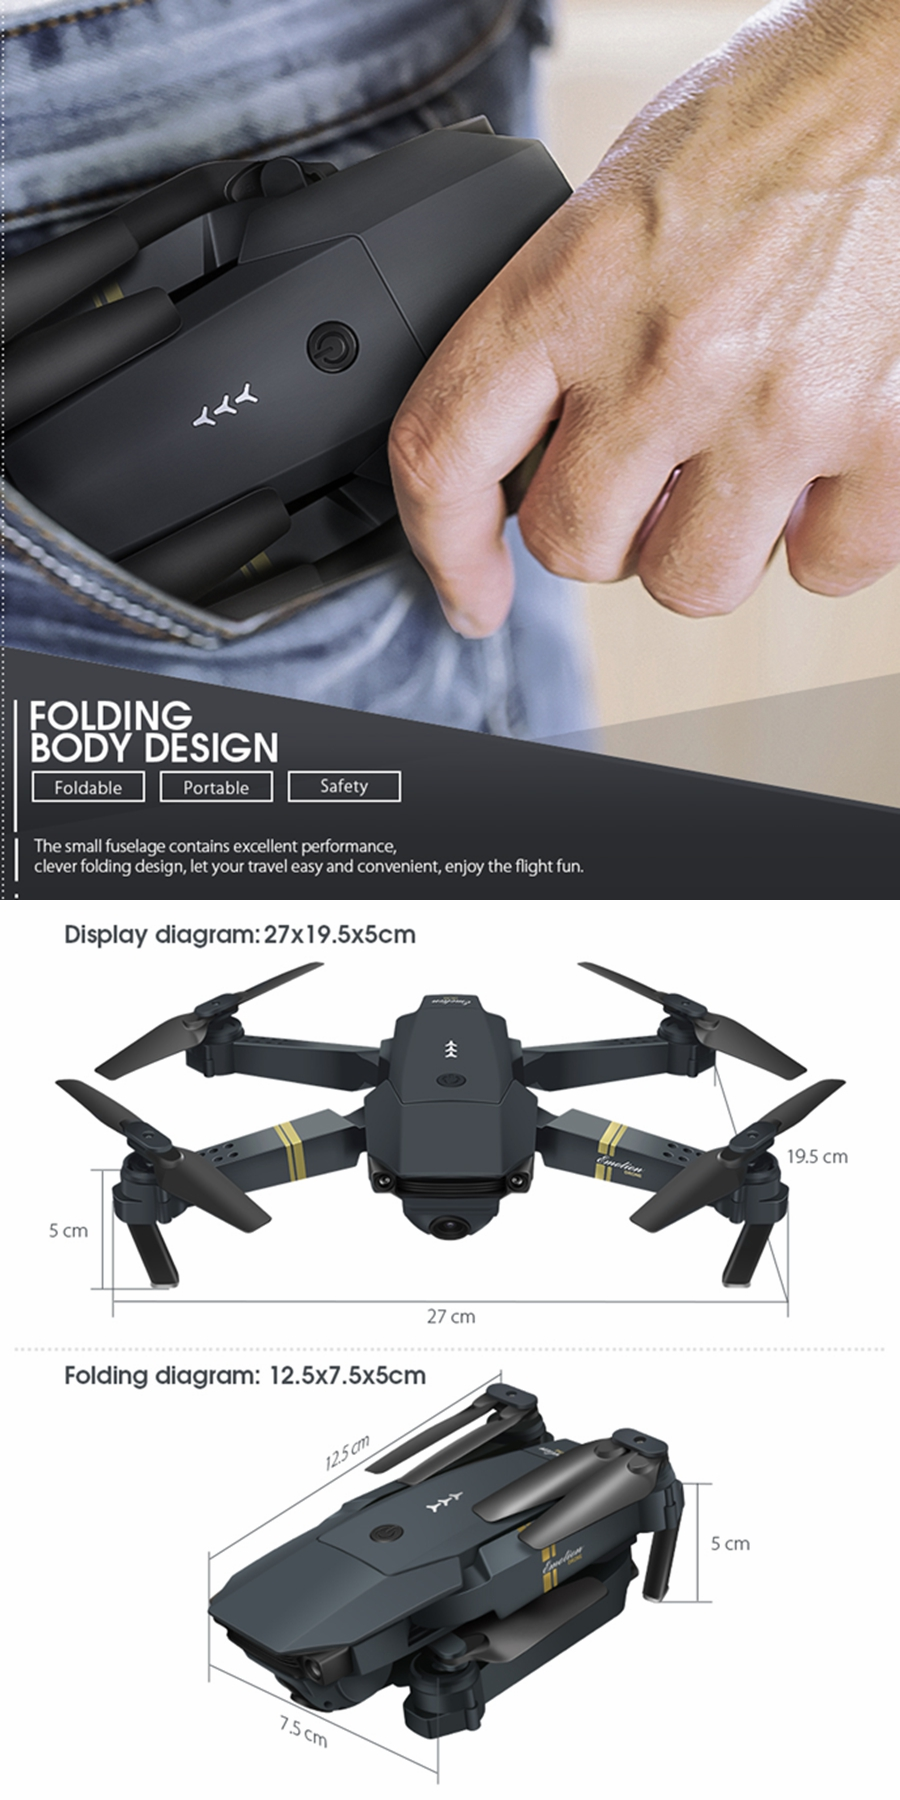 Eachine E58 fits in your pocket